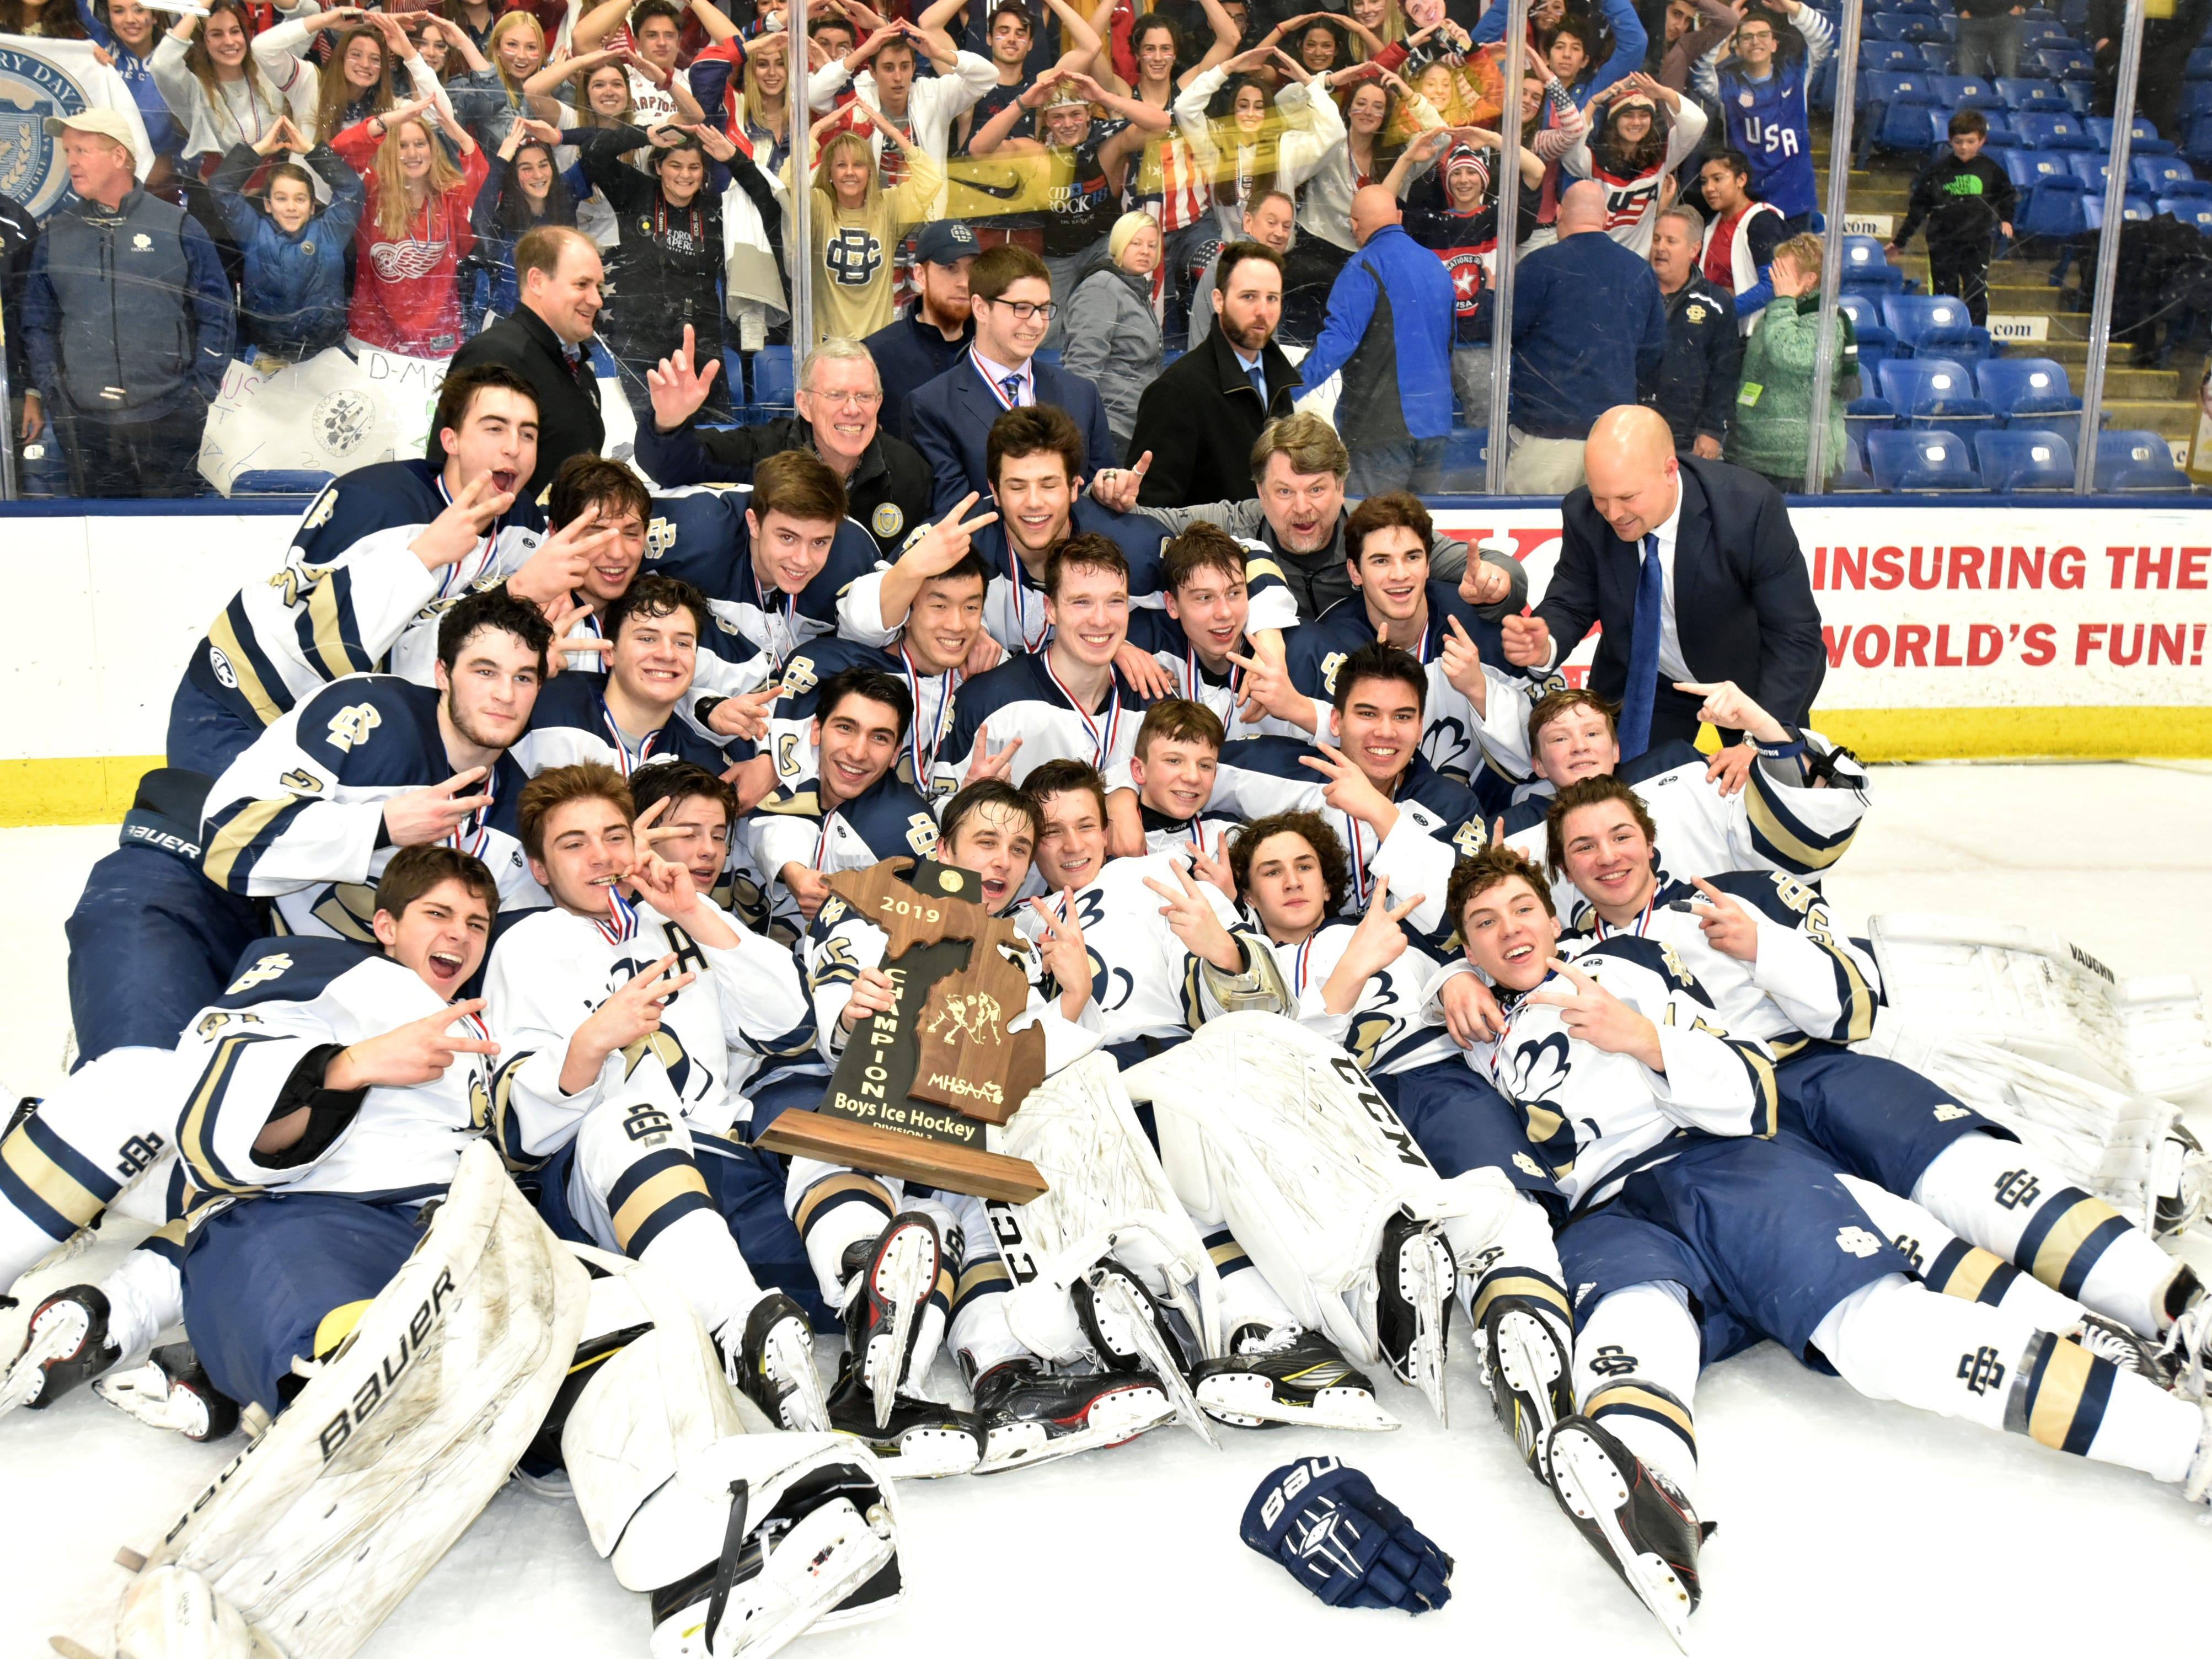 The Detroit Country Day School hockey team, with two fingers raised, celebrates its second consecutive championship on March 9, 2019.